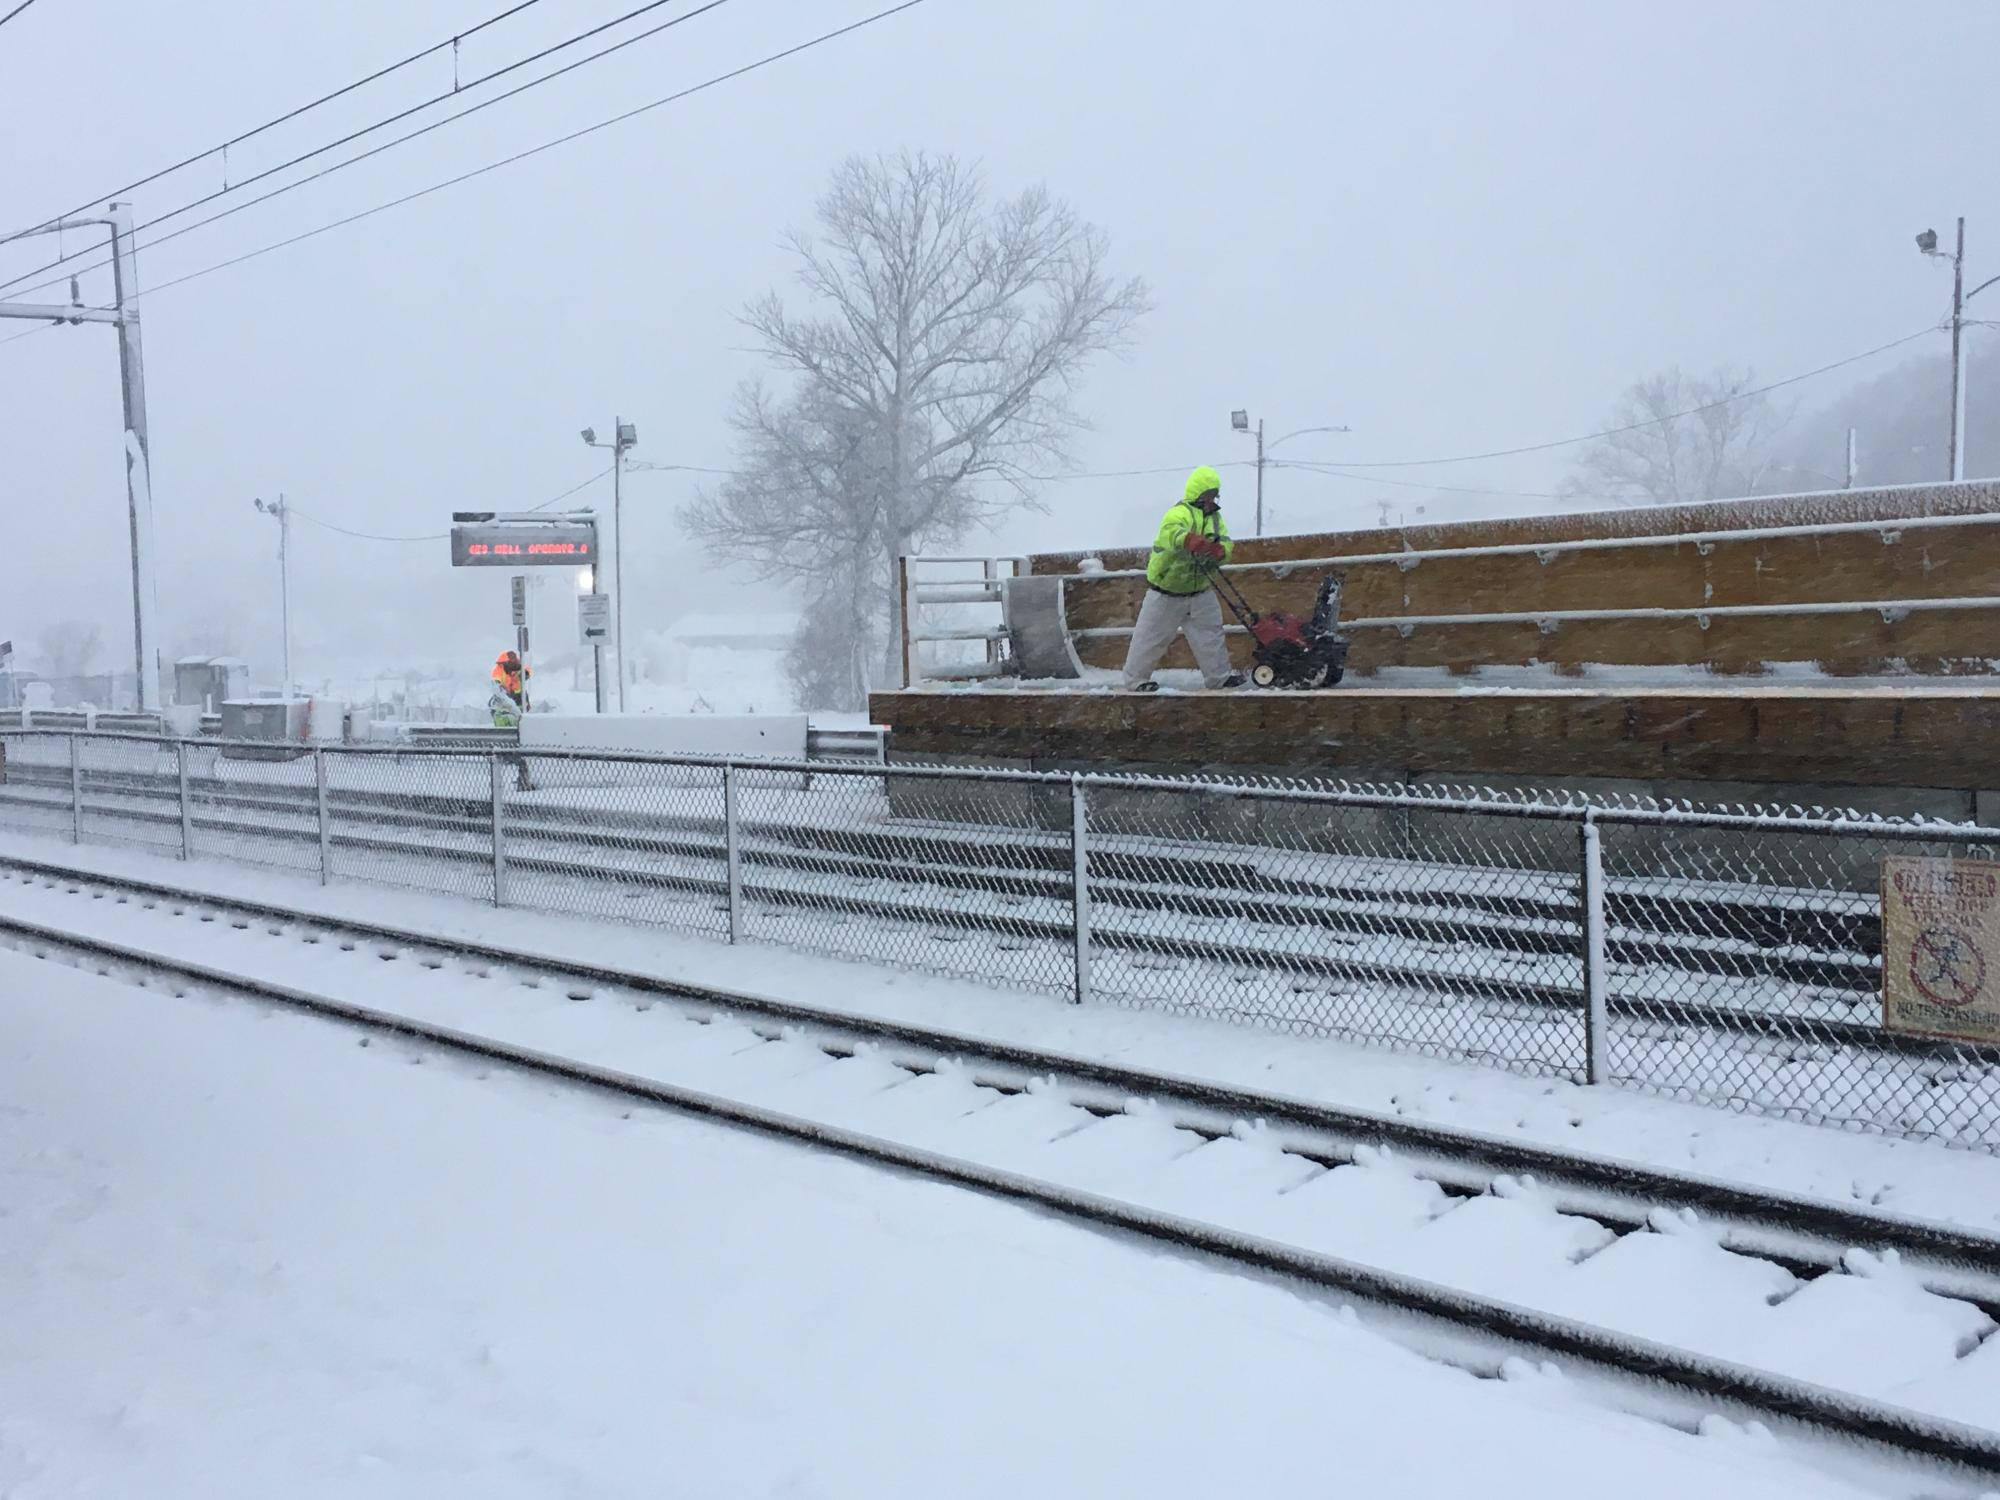 Two crewpeople clear the platforms at Mansfield Commuter Rail station on the Providence/Stoughton Line. One is wearing a neon yellow vest and is using a snowblower on a temporary mini-high accessibility platform. The other is wearing an orange vest and is underneath the countdown sign.